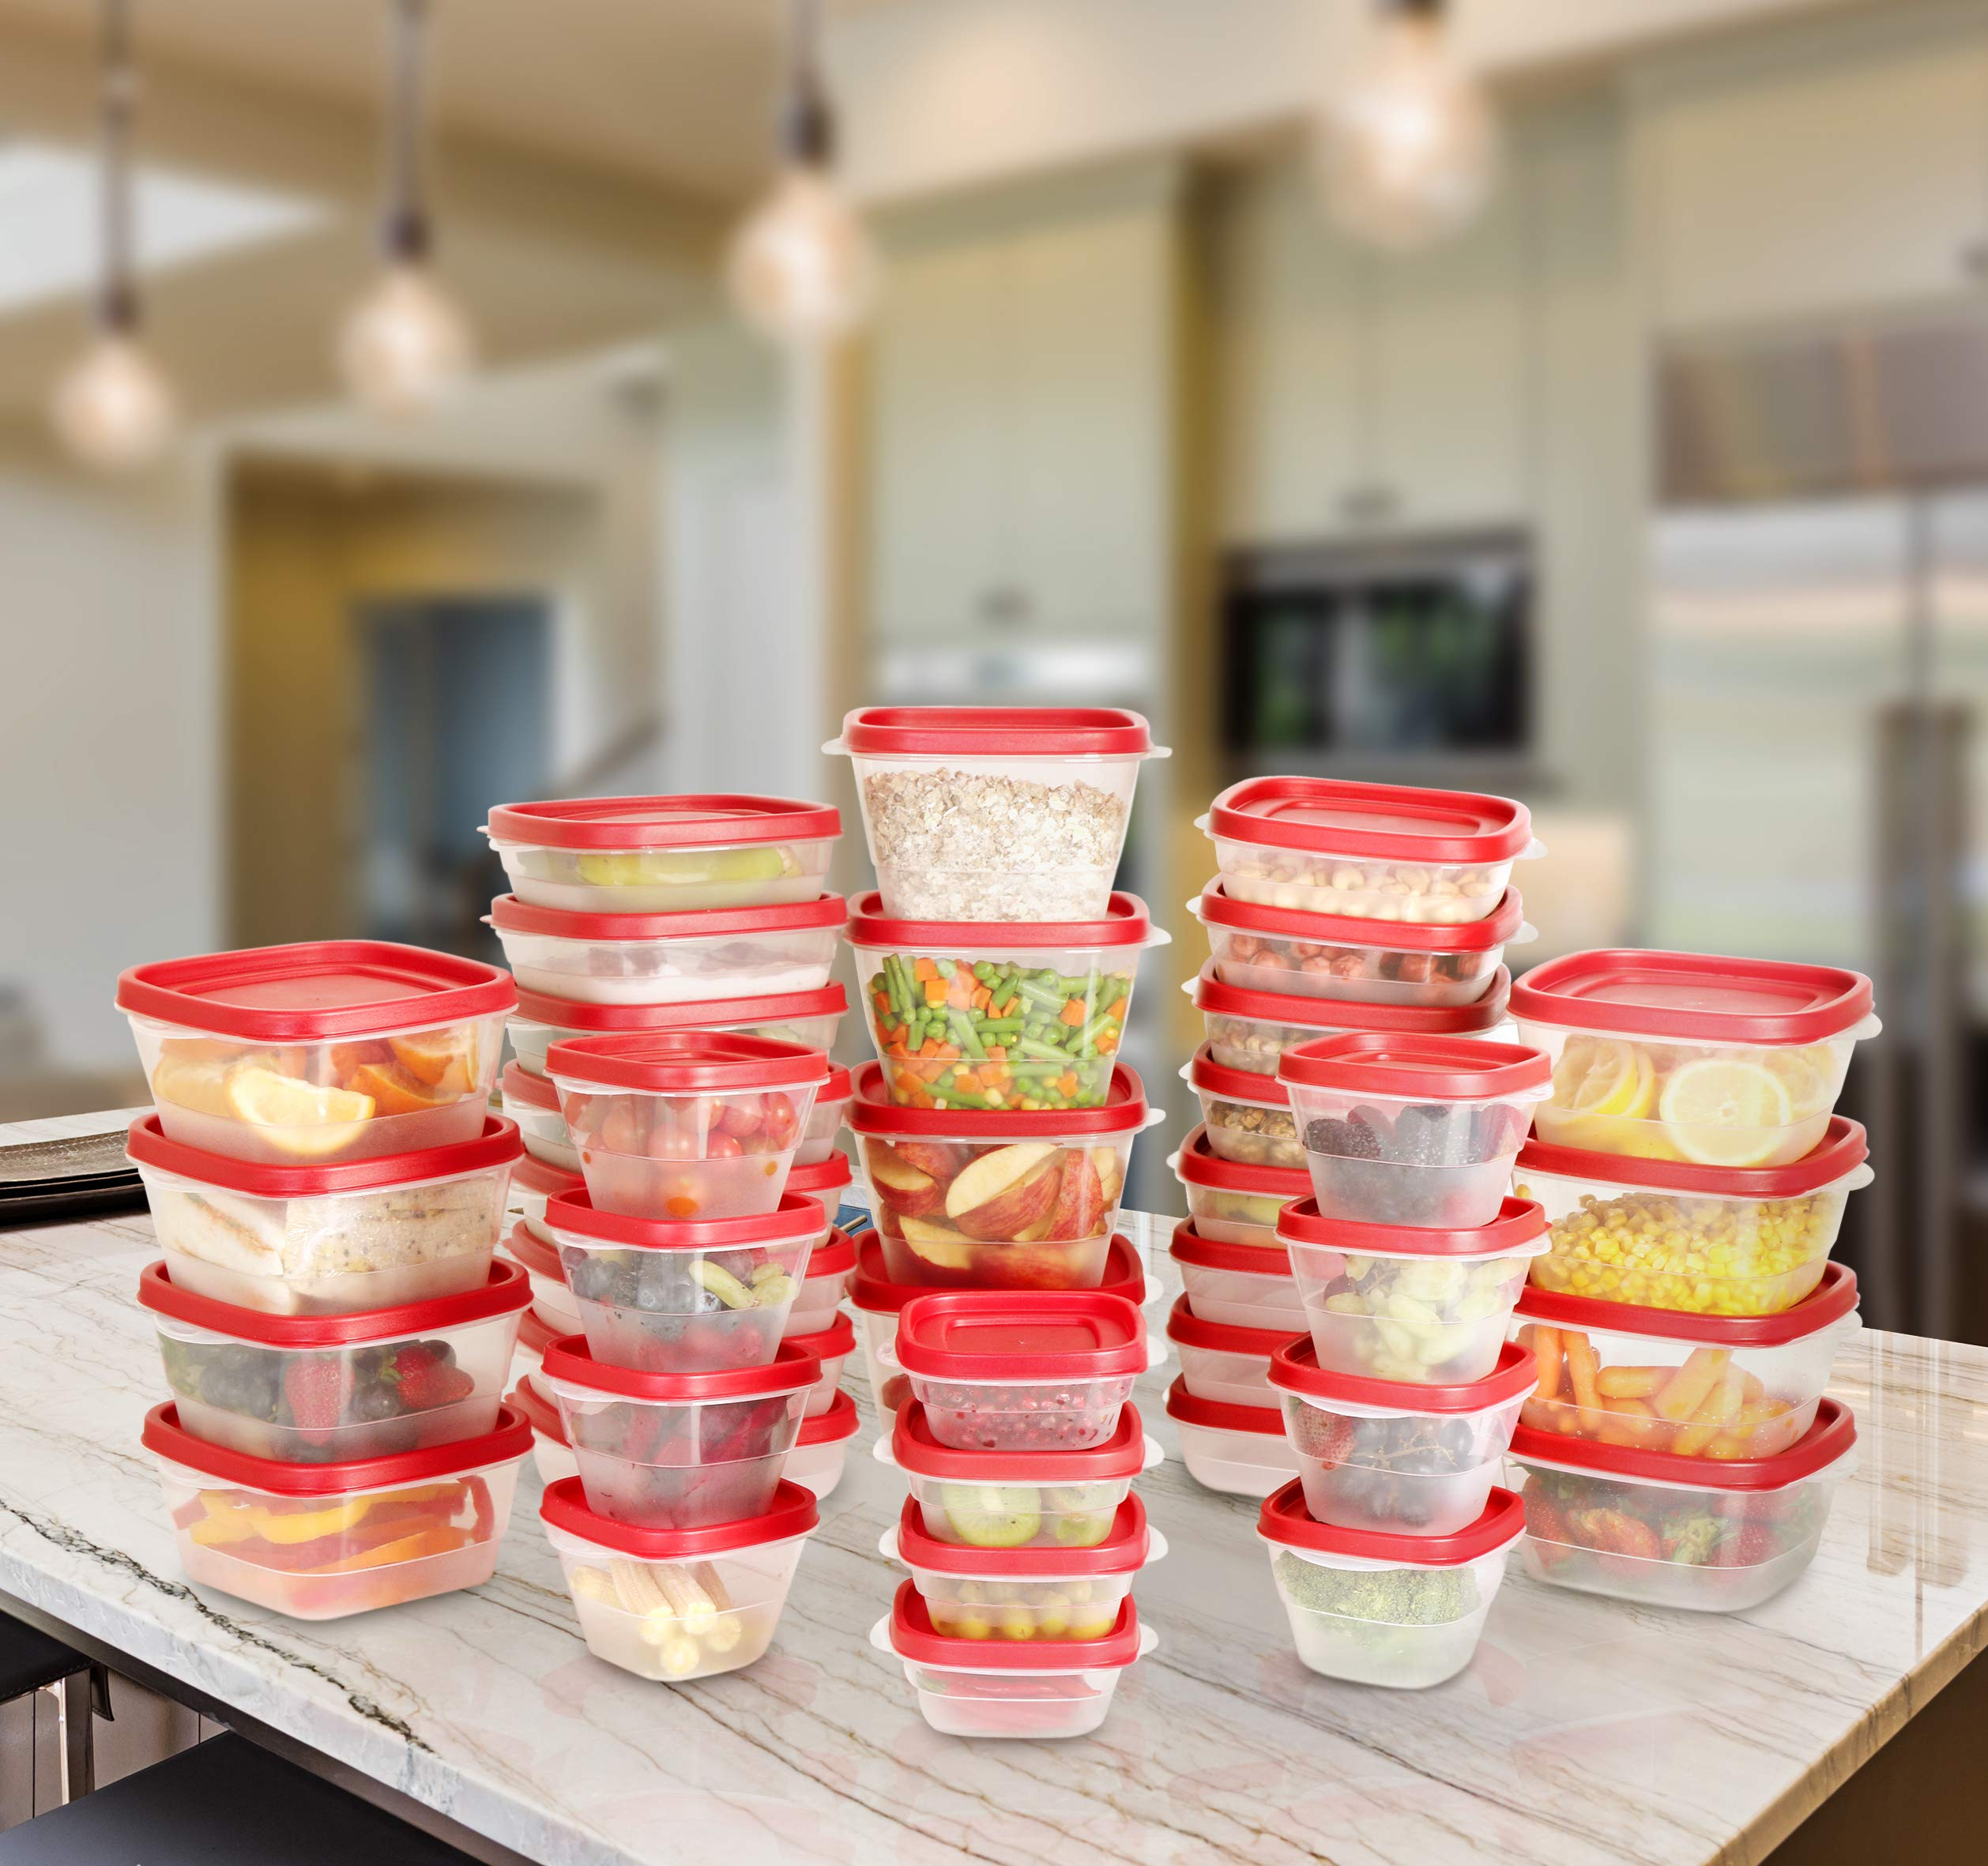 Utopia Kitchen Plastic Food Storage Containers with Lids [40 Pack] by Utopia Kitchen (Image #8)